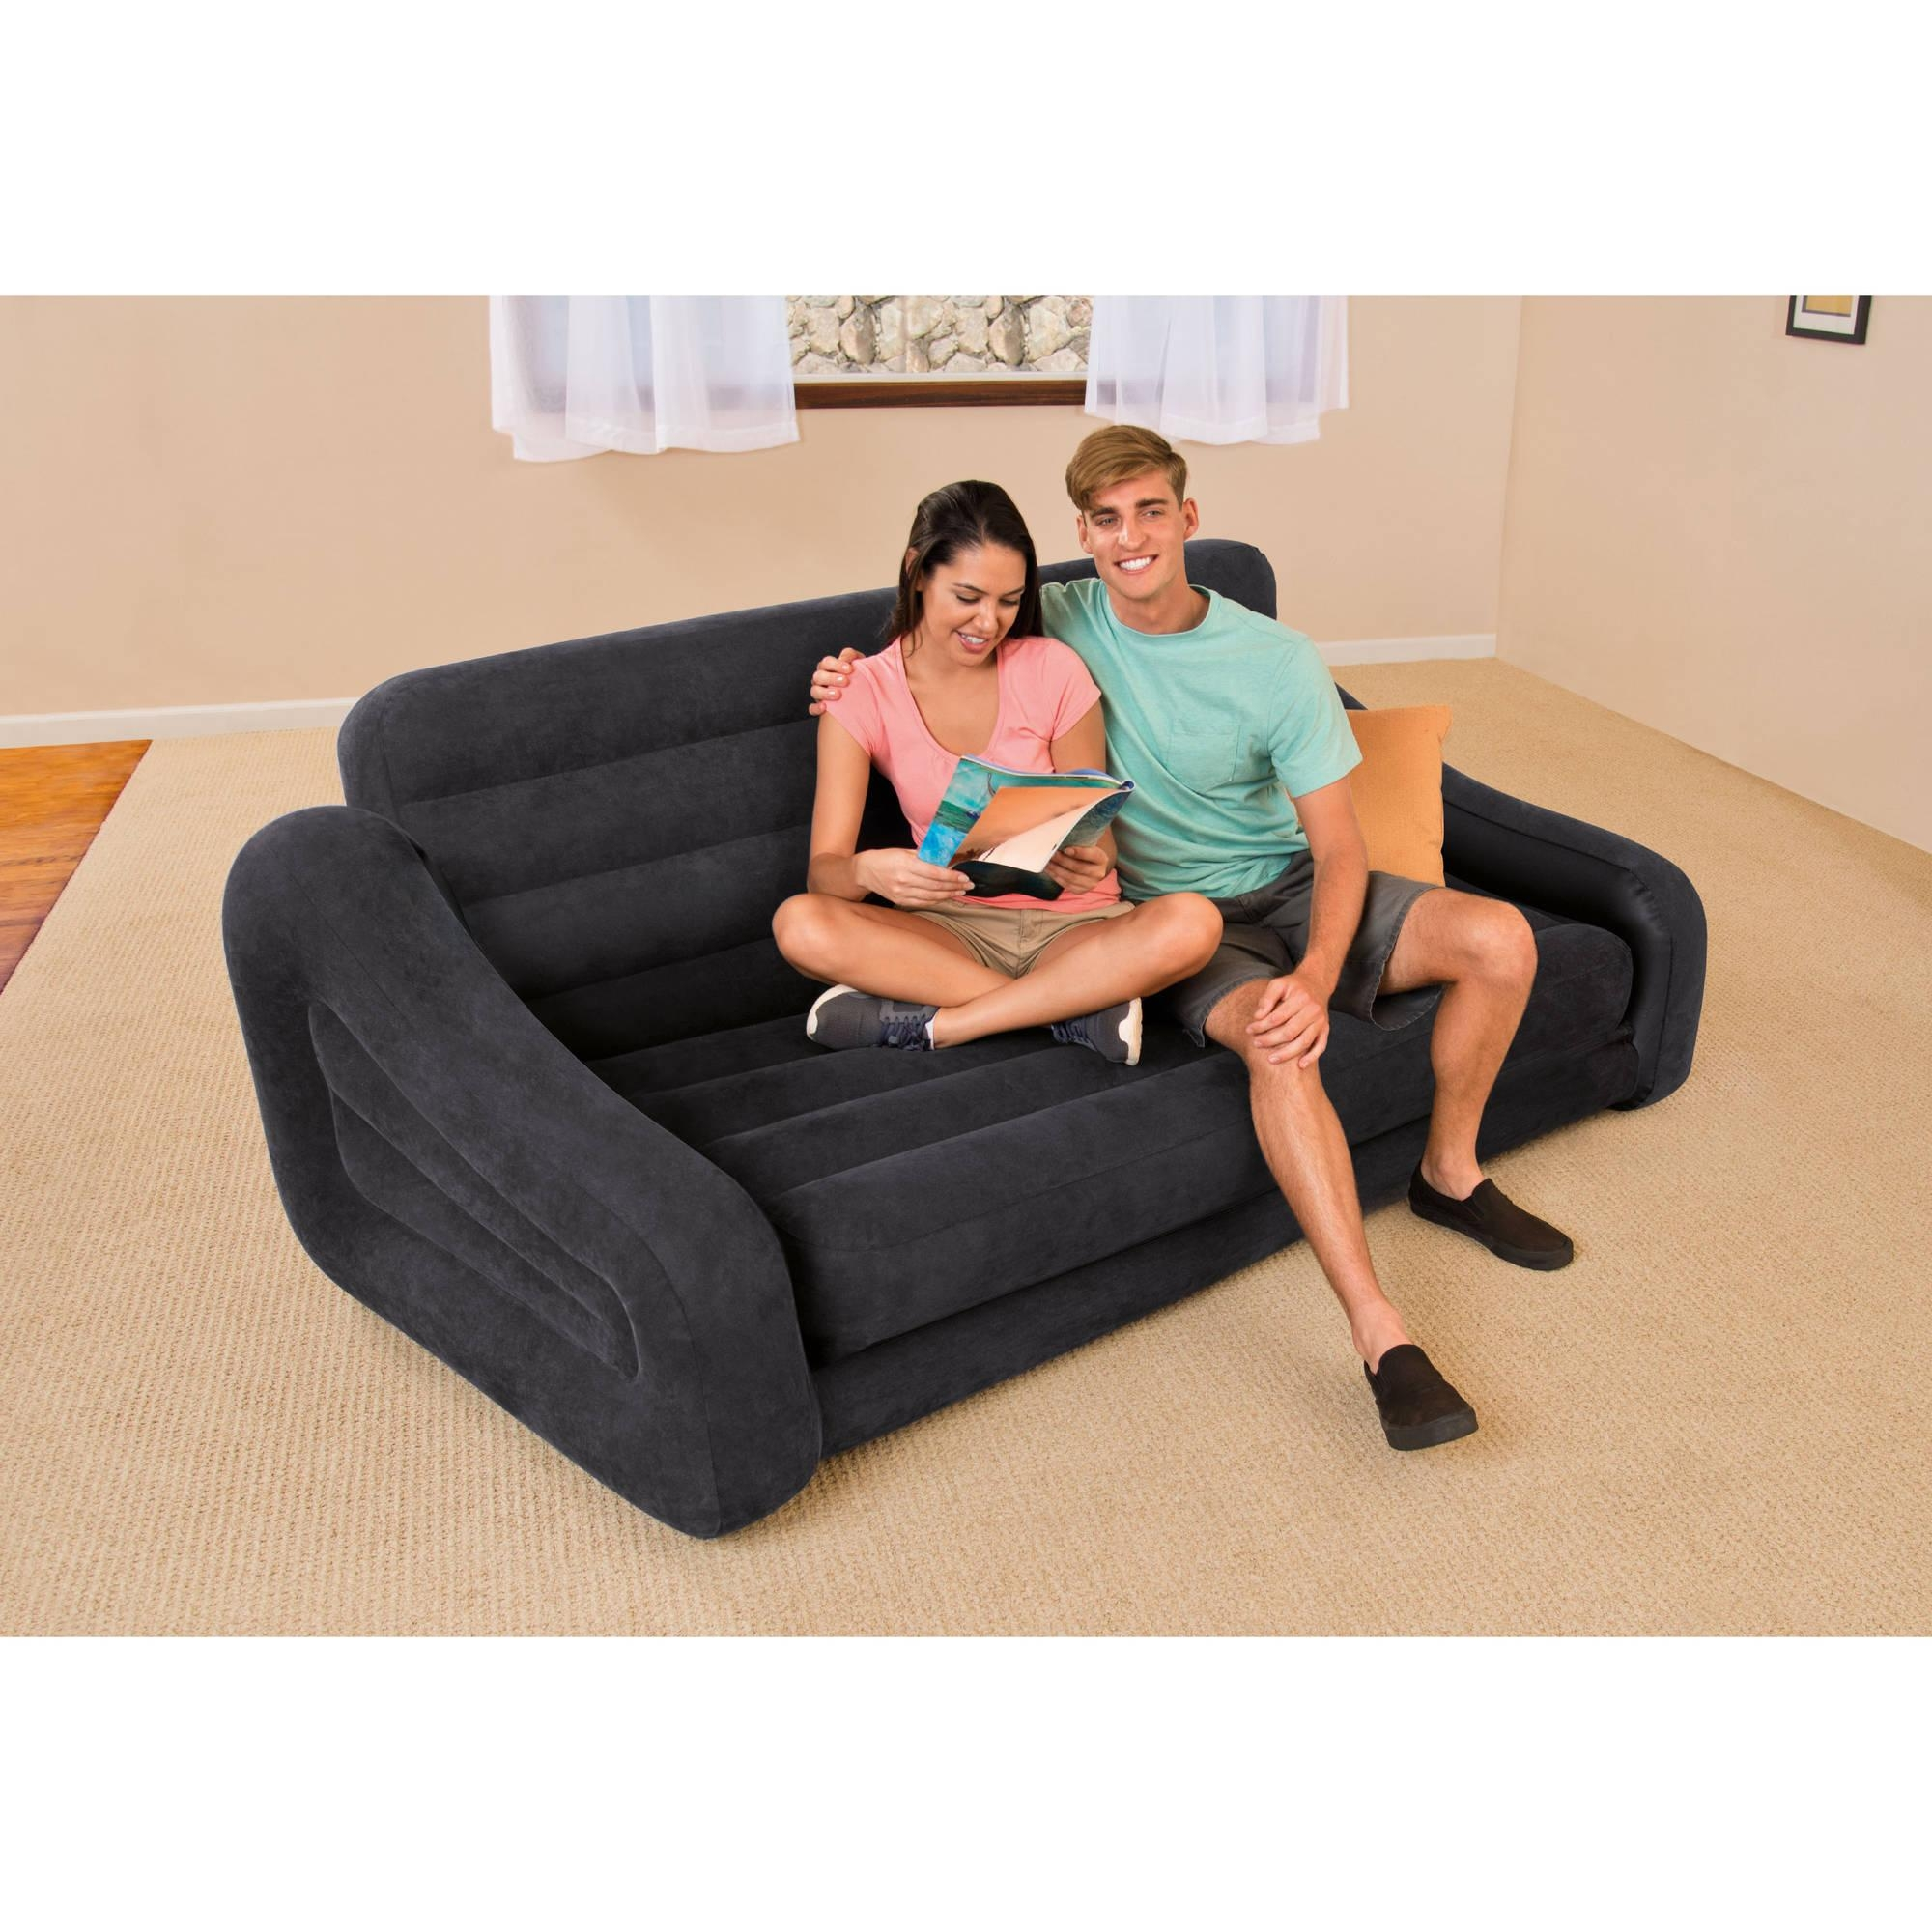 Intex Queen Inflatable Pull Out Sofa Bed – Walmart For Fold Up Sofa Chairs (Image 15 of 22)